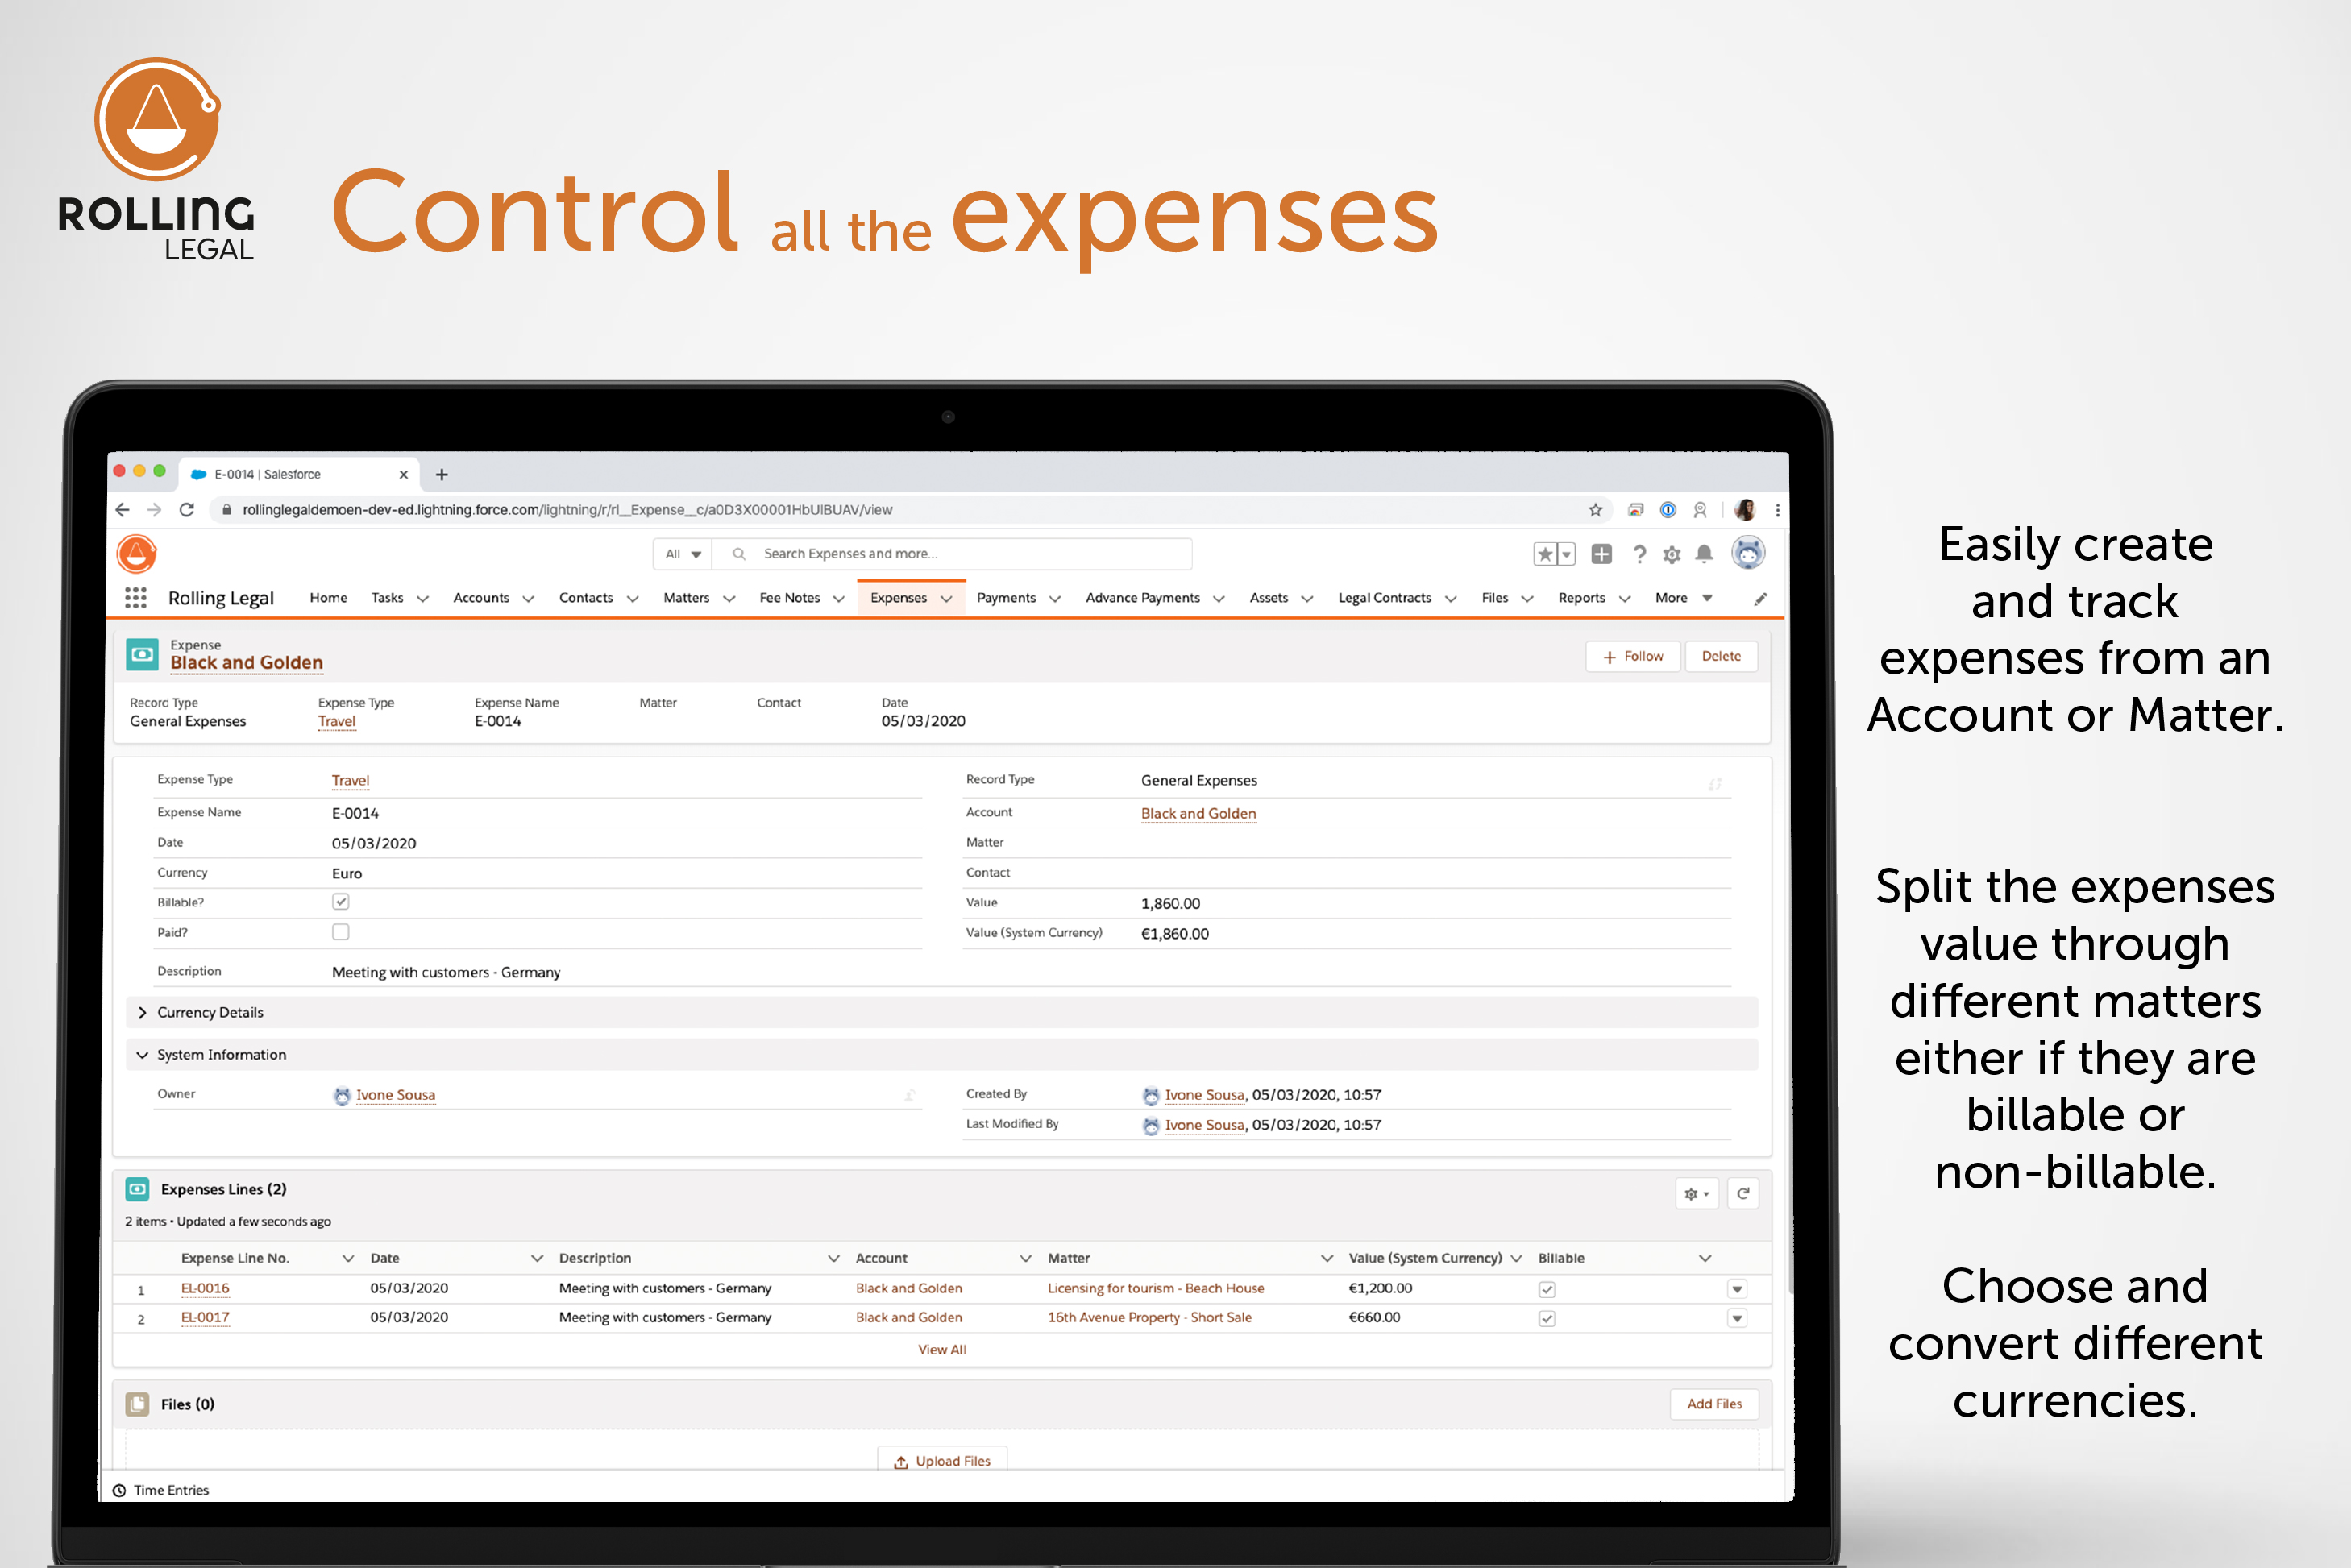 Rolling Legal: Control all the expenses!